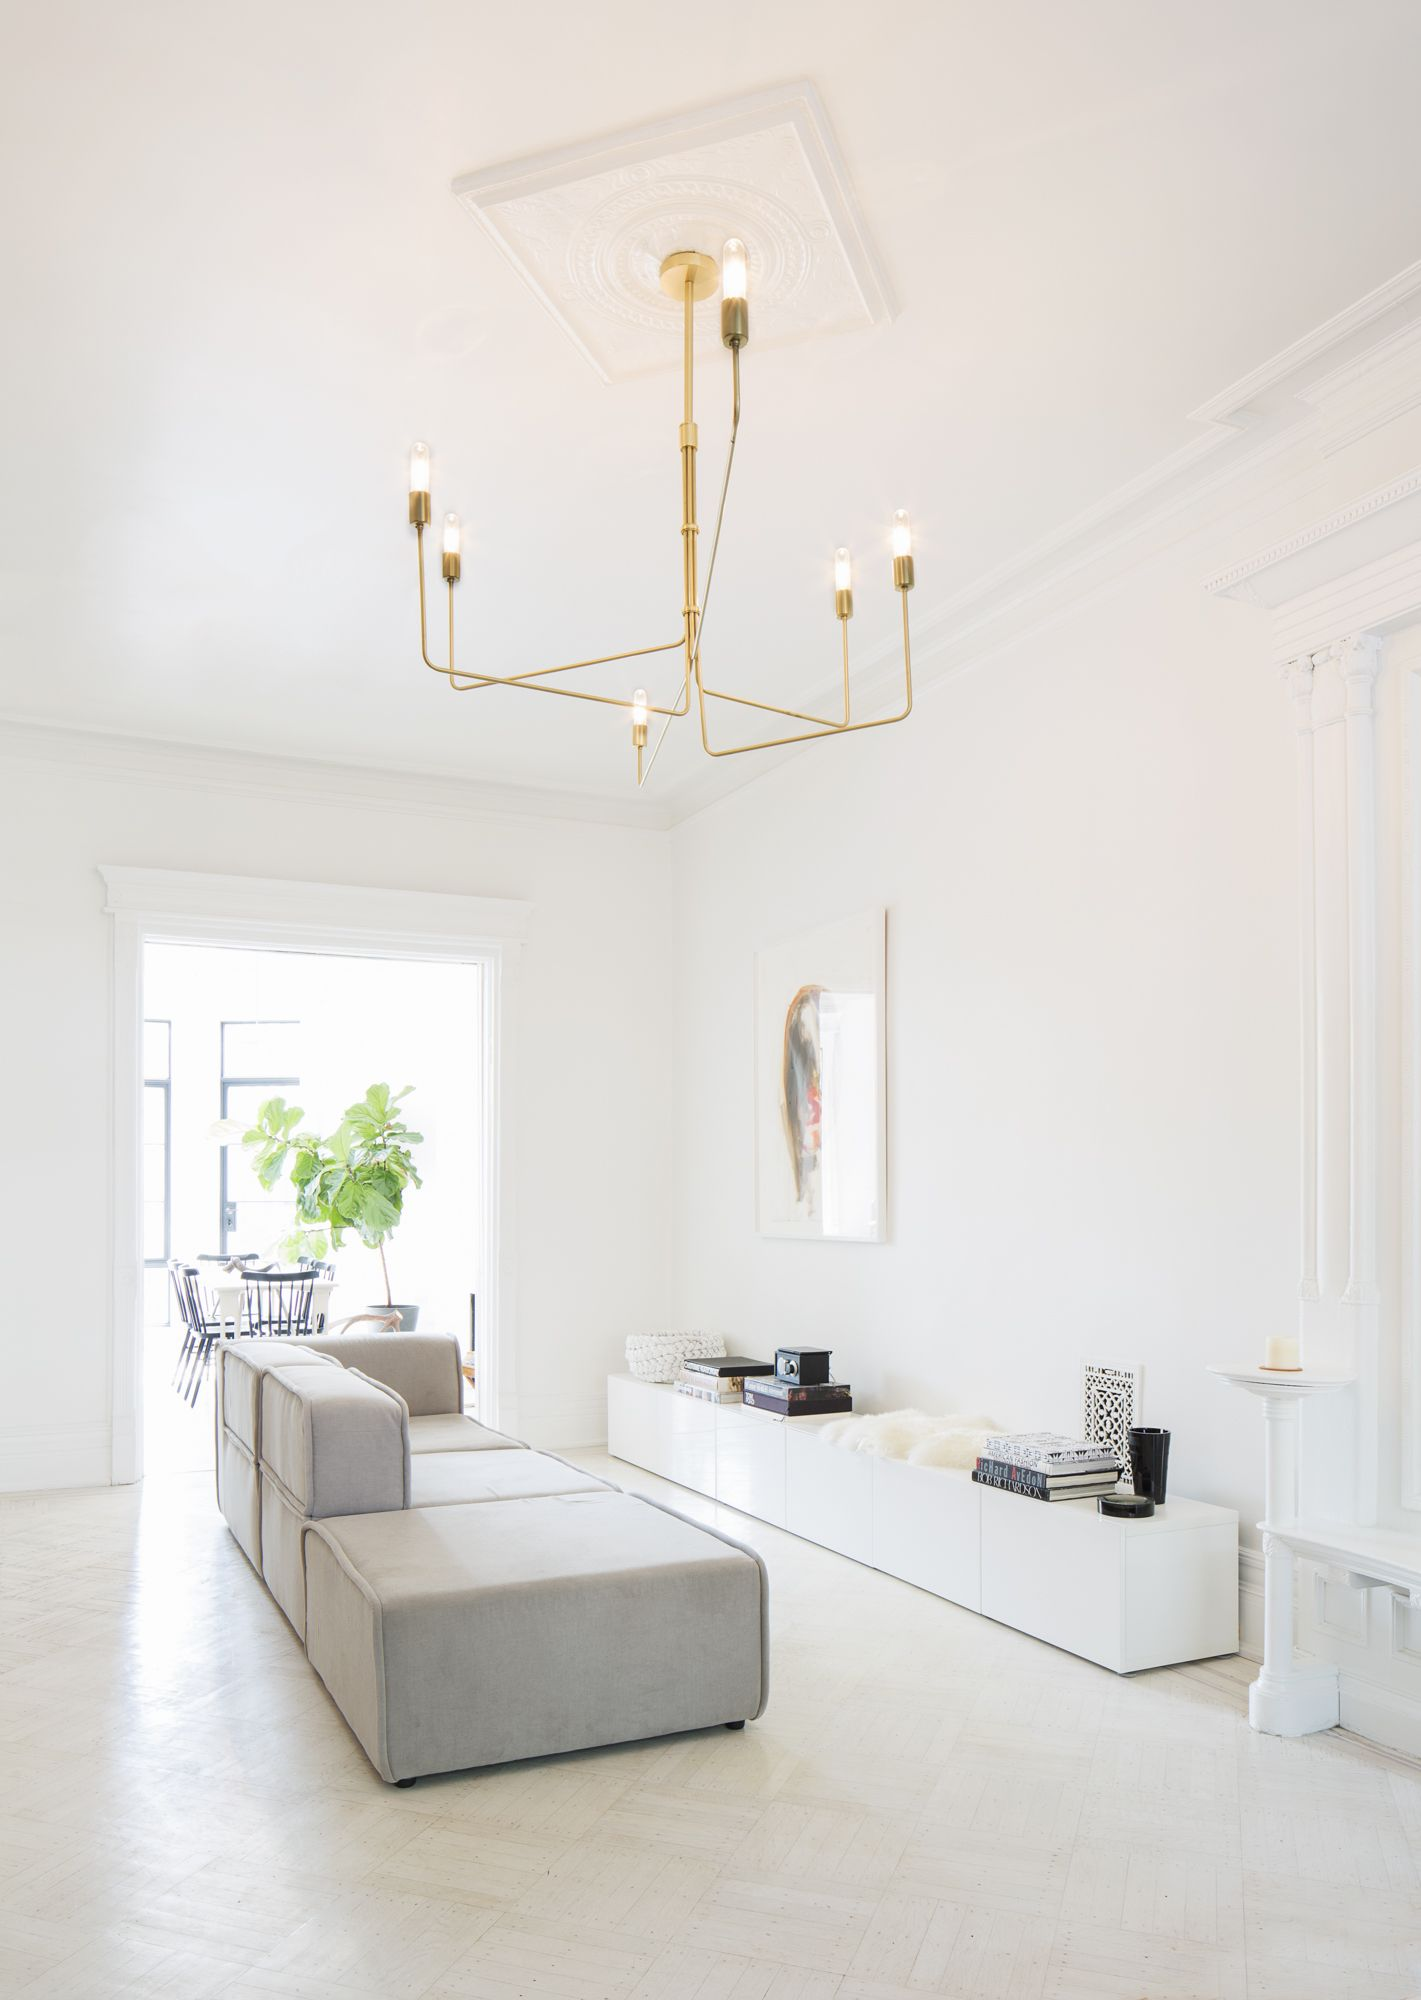 JEFF MADALENA'S BROOKLYN HOME ON REMODELISTA (With images